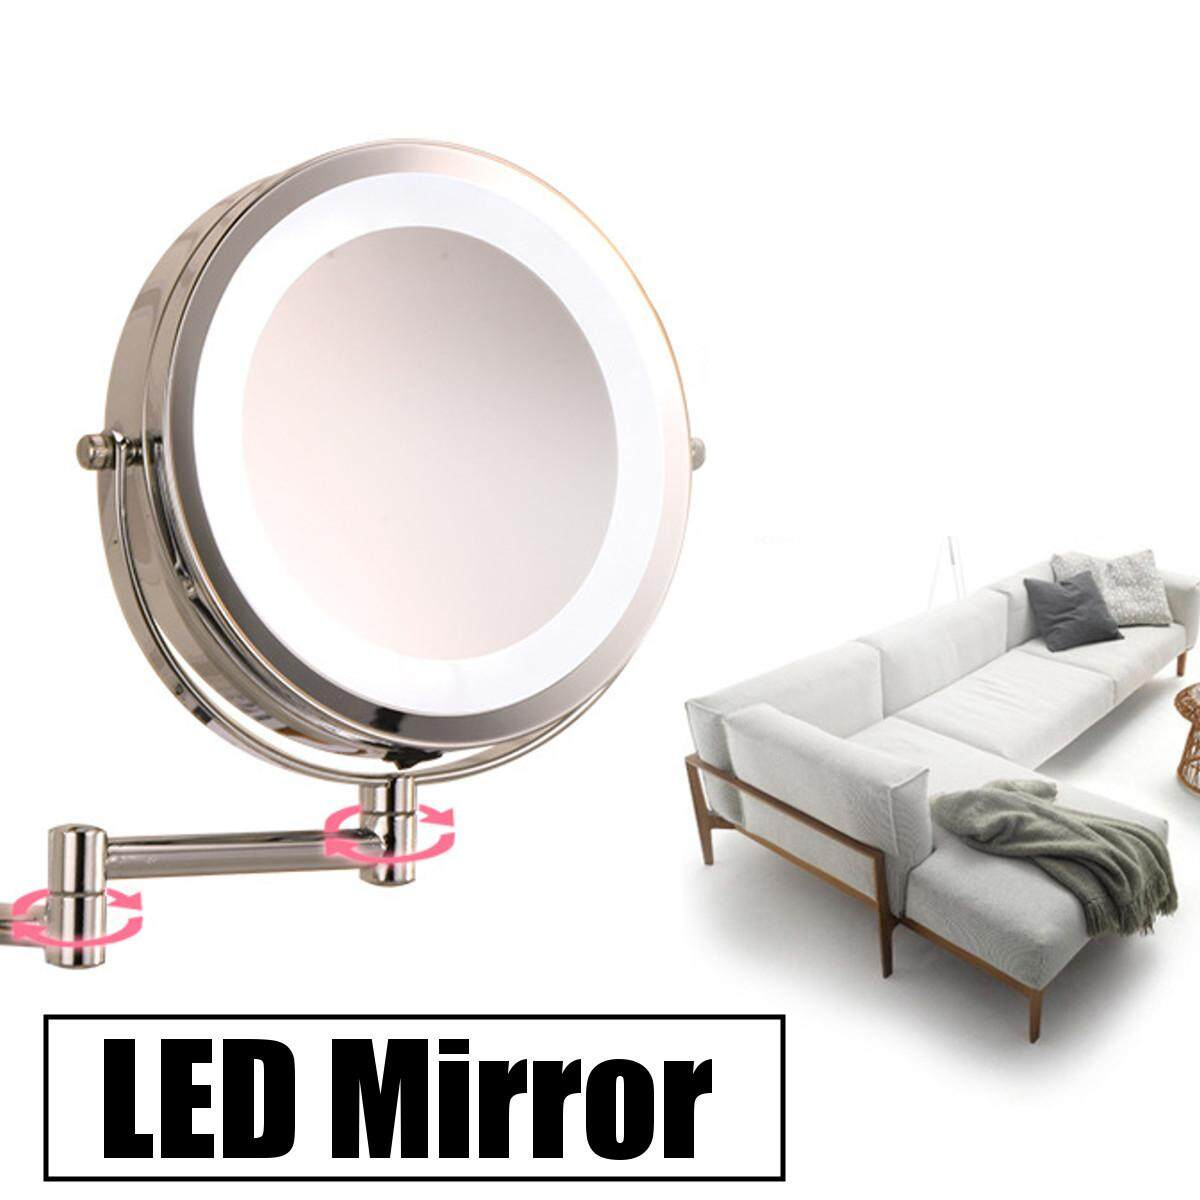 Flexible Folding Led Cosmetic Mirror By Glimmer.